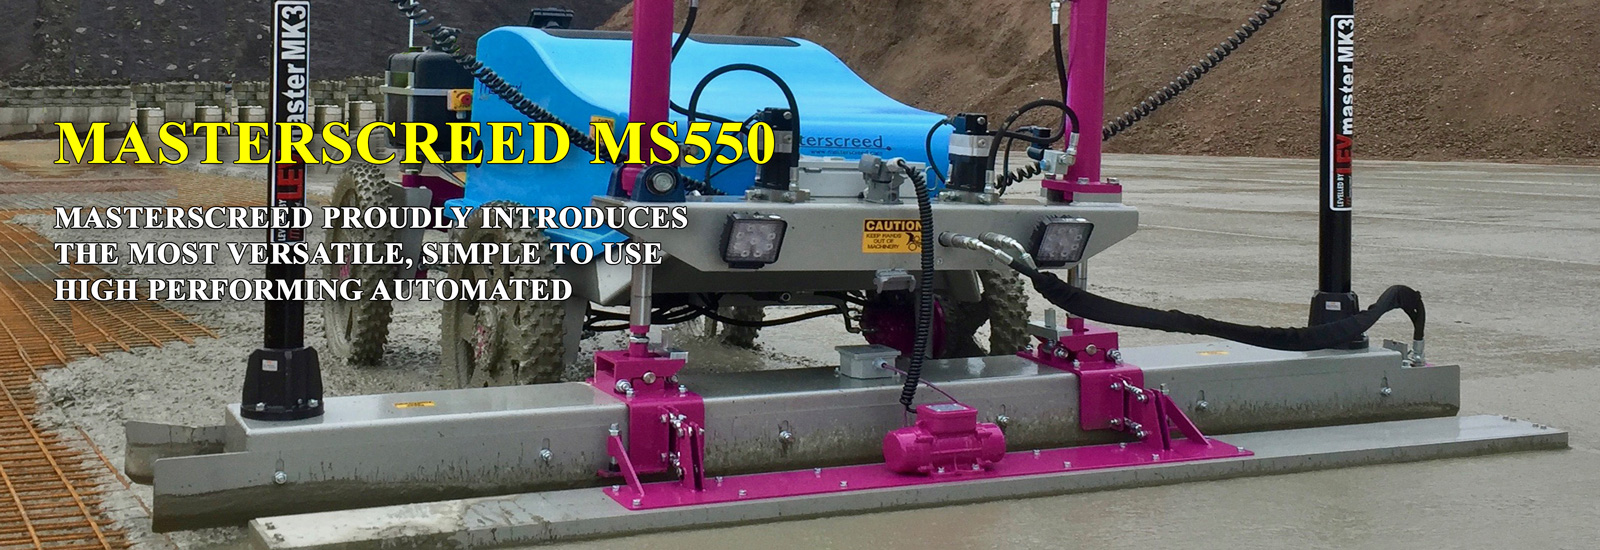 MS550 – Automated Concrete Laser Guided Screed